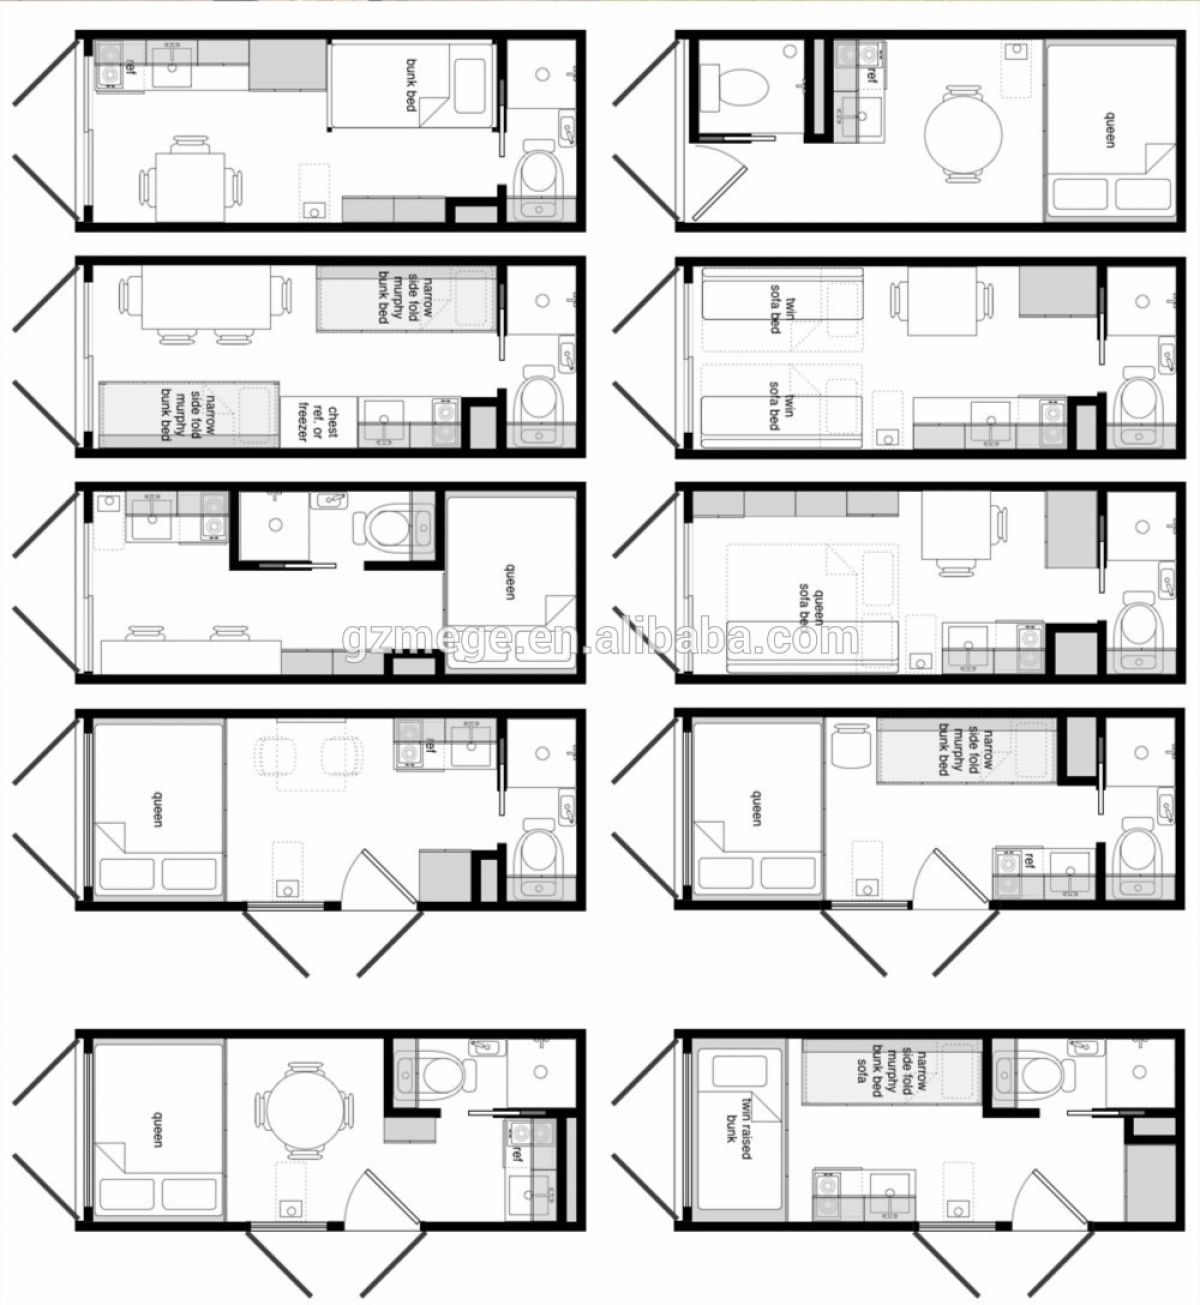 40 Feet Container Homes: 40 Foot Shipping Container House Layout